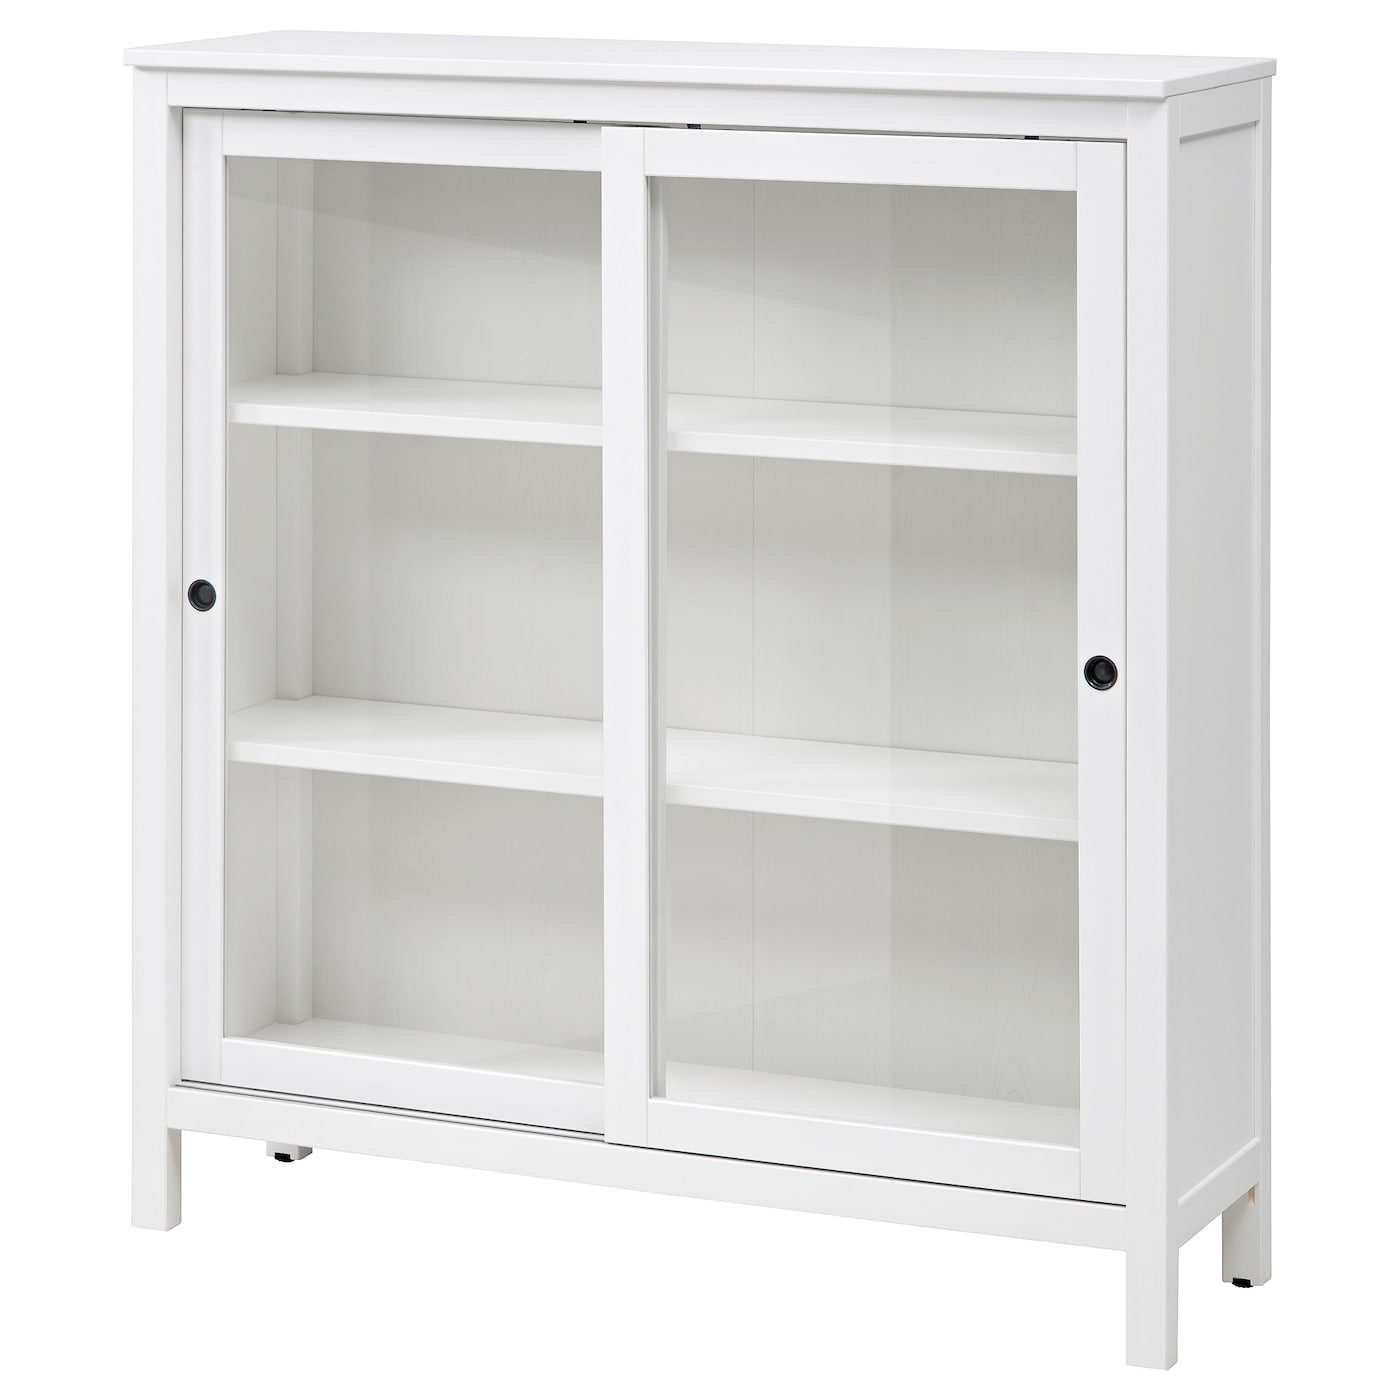 Ikea hemnes glass door cabinet sliding doors do not take up any space when opened